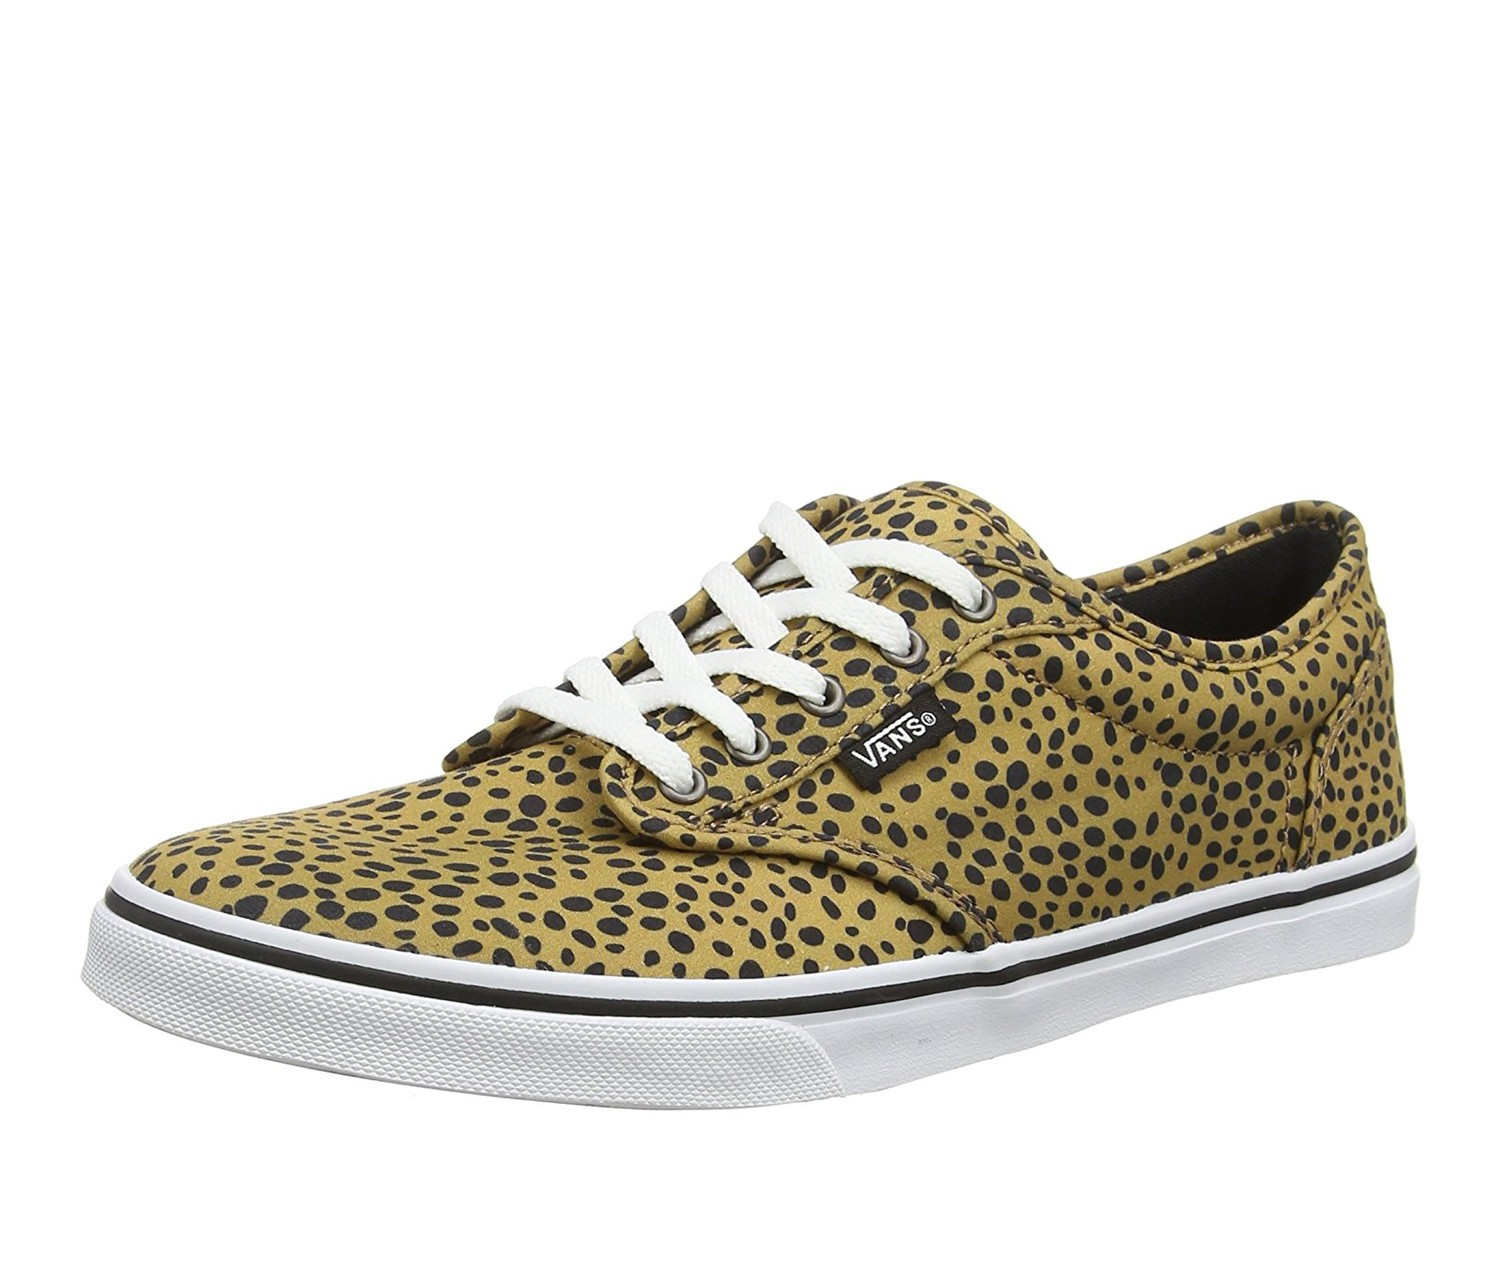 Vans womens atwood low casual shoes